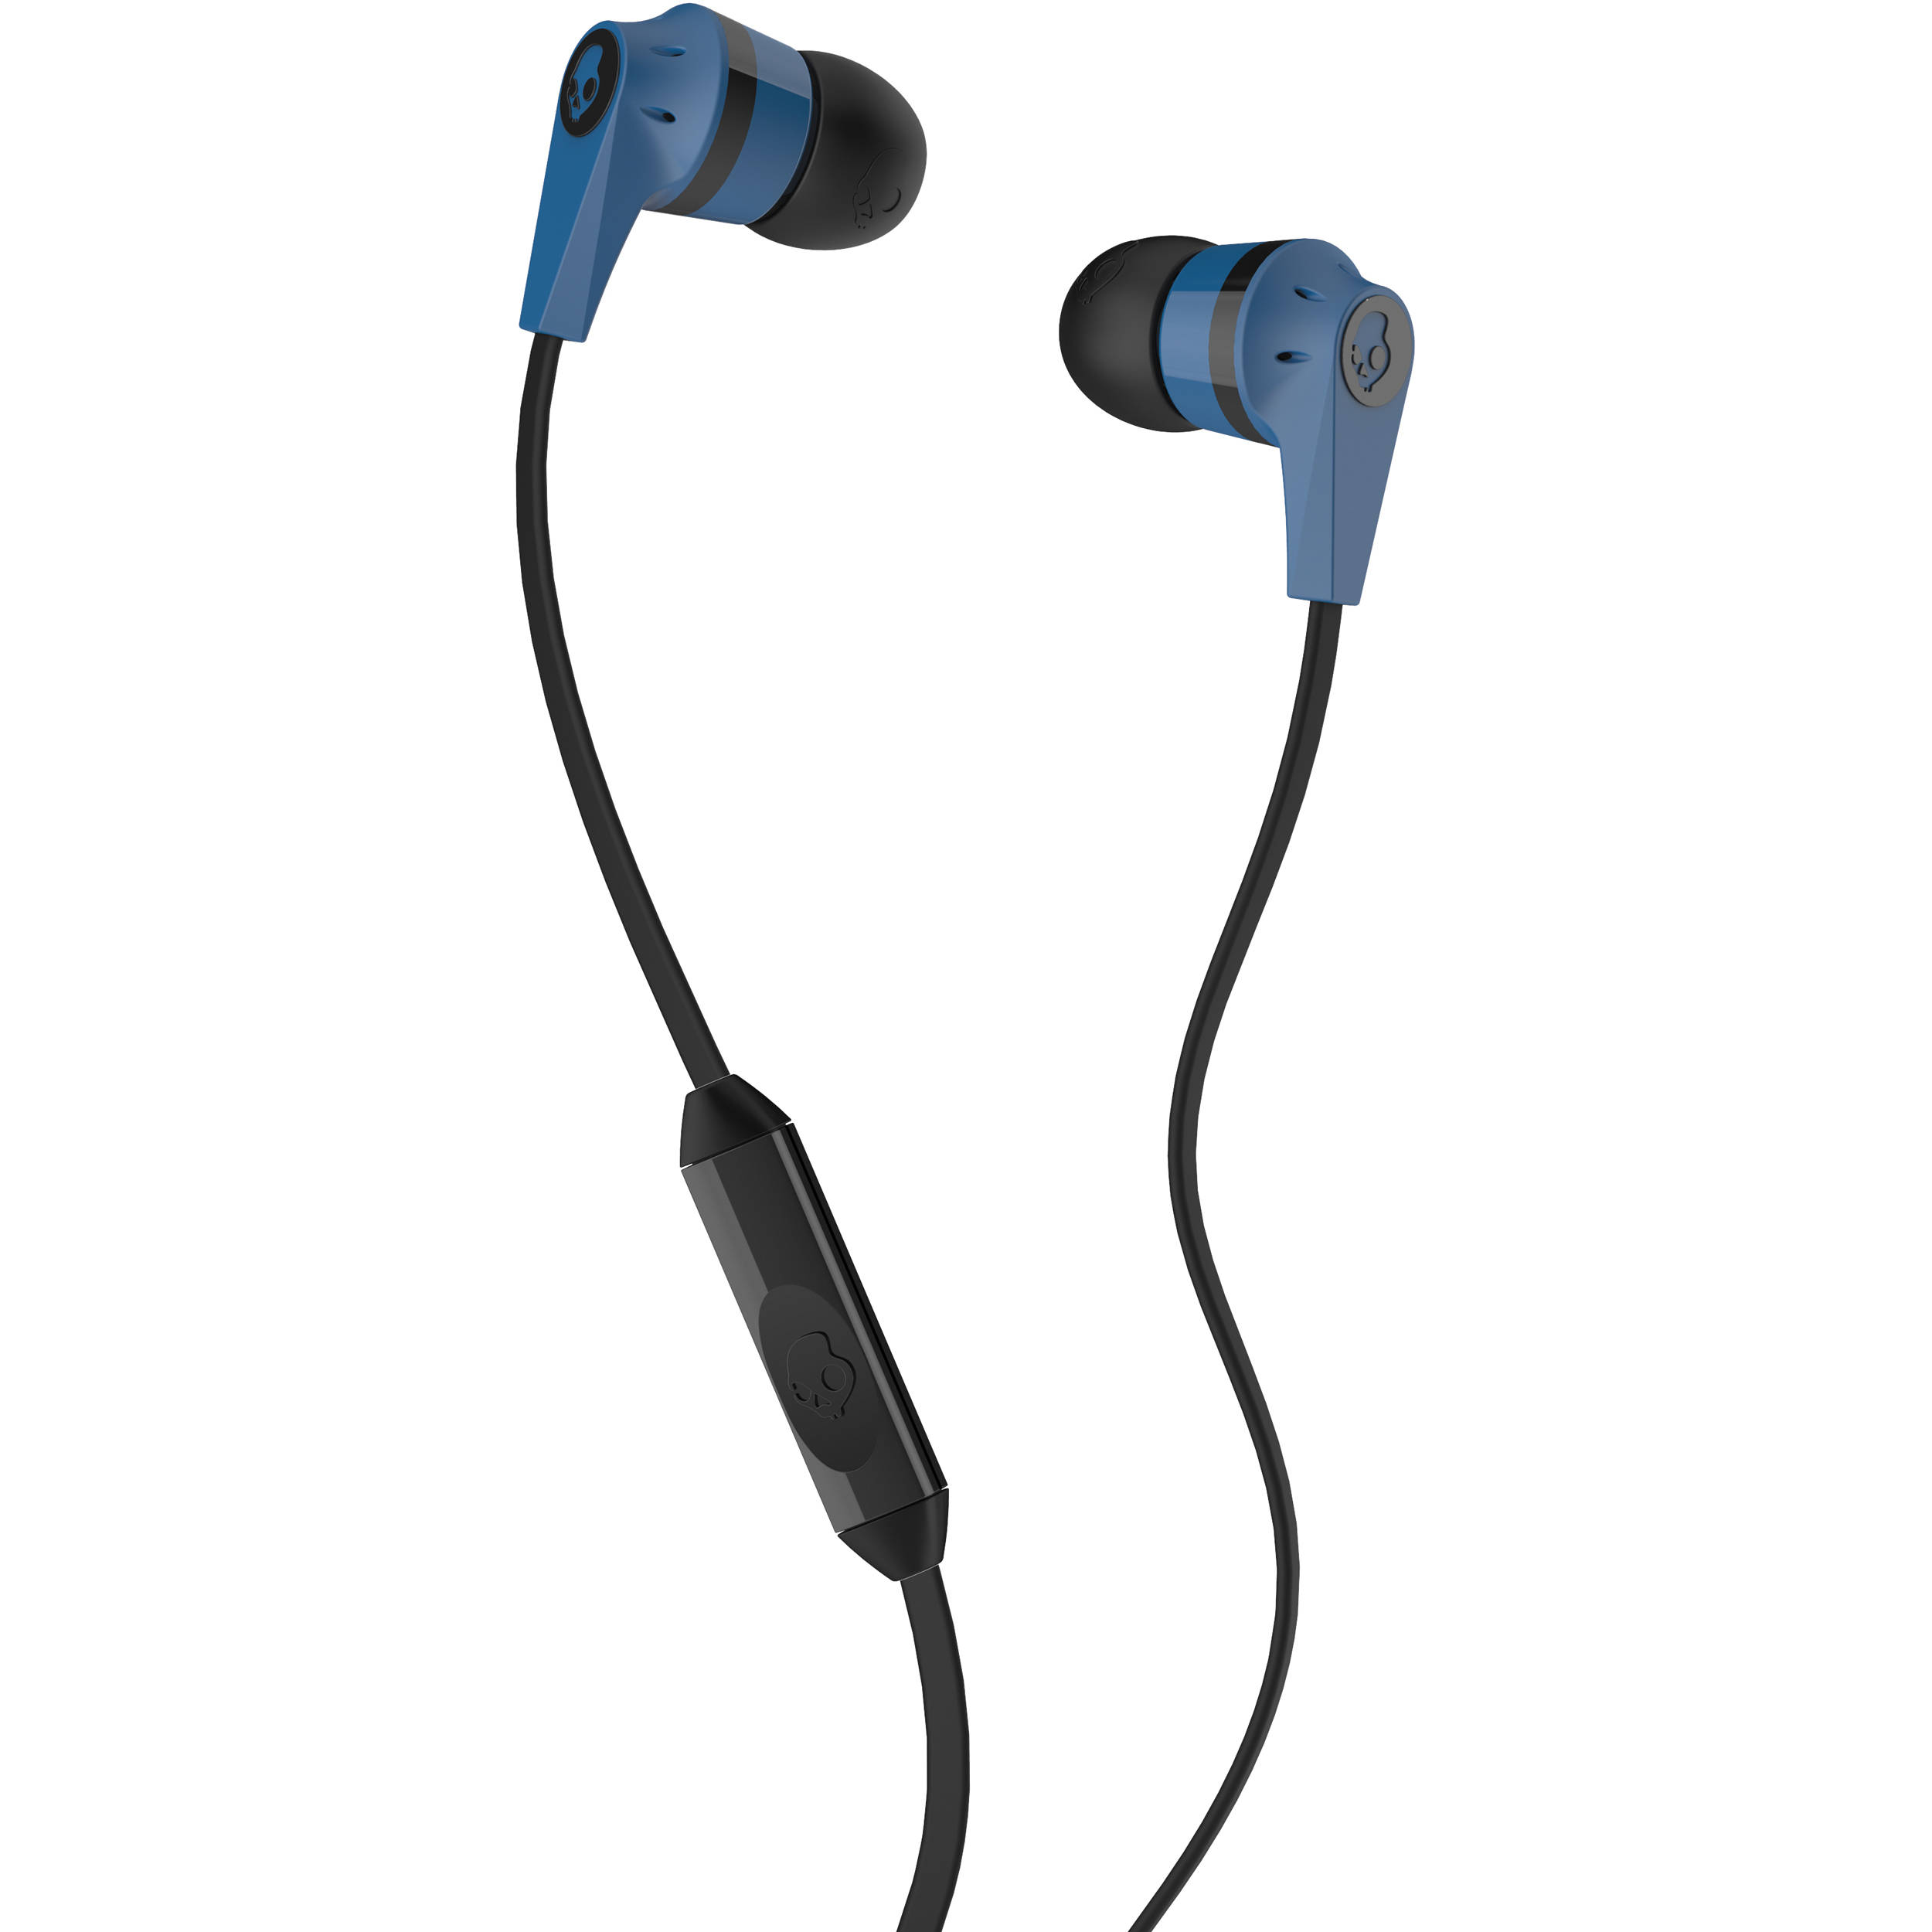 7a68f580cbc Skullcandy INK D 2 Earbud Headphones (Blue and Black) S2IKDY-101